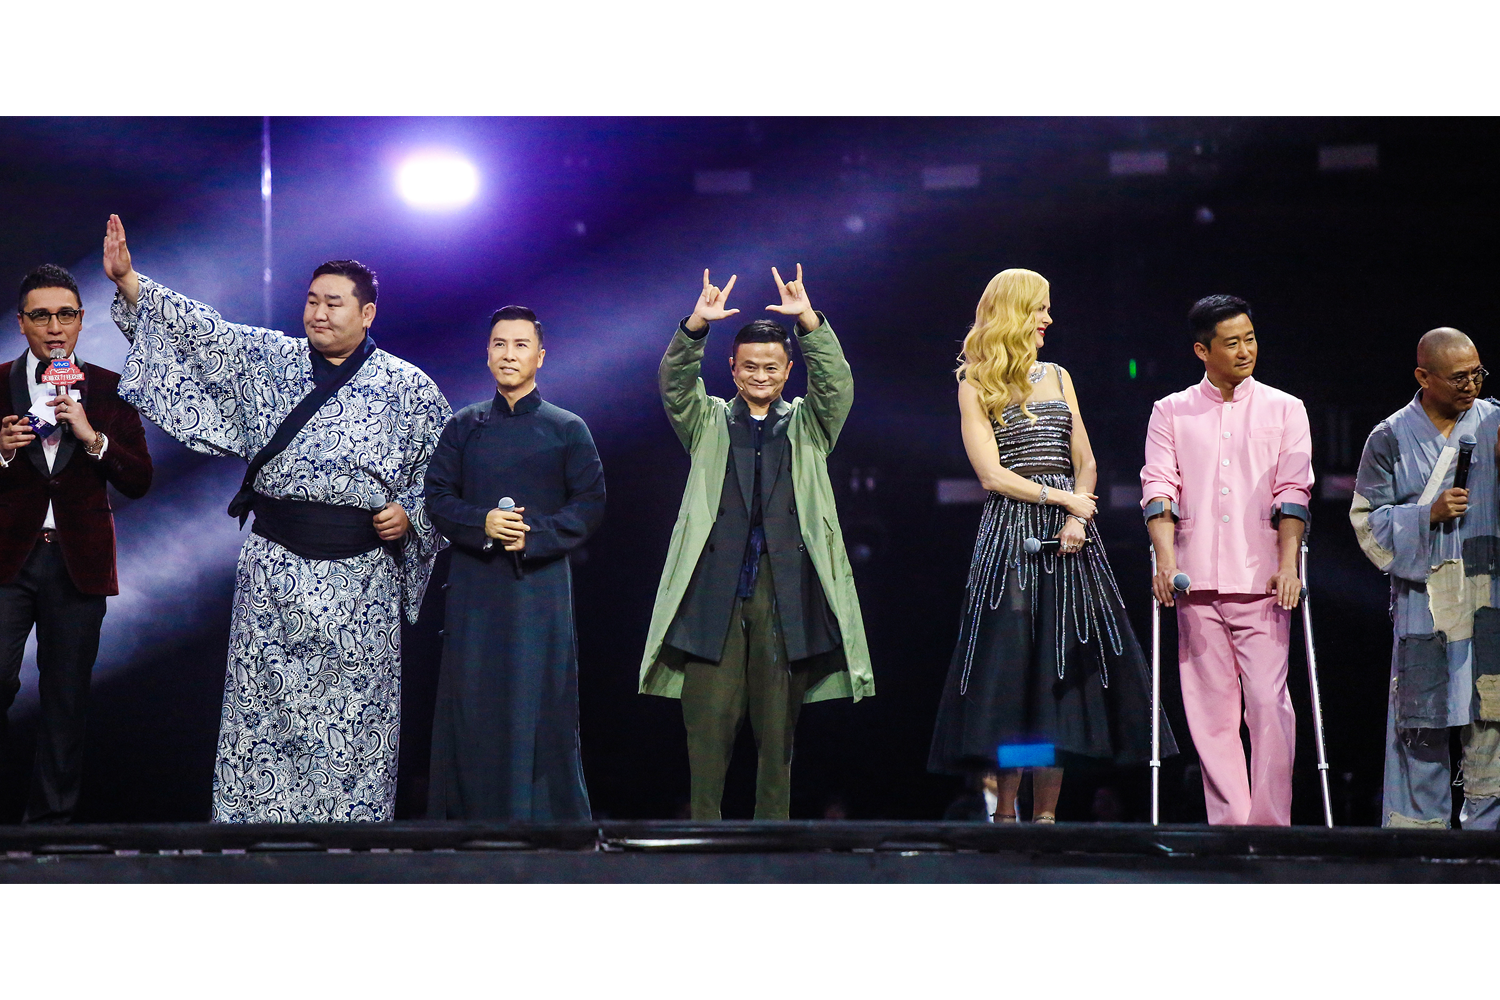 November 10, Jack Ma, Chairman of the Alibaba Group, with actress Nicole Kidman and other celebrities, attend a show during Alibaba Group's 11.11 Singles' Day global shopping festival in Shanghai. The next day, Alibaba's Singles' Day sales hit a new record: U.S.$25 billion. (ImagineChina)